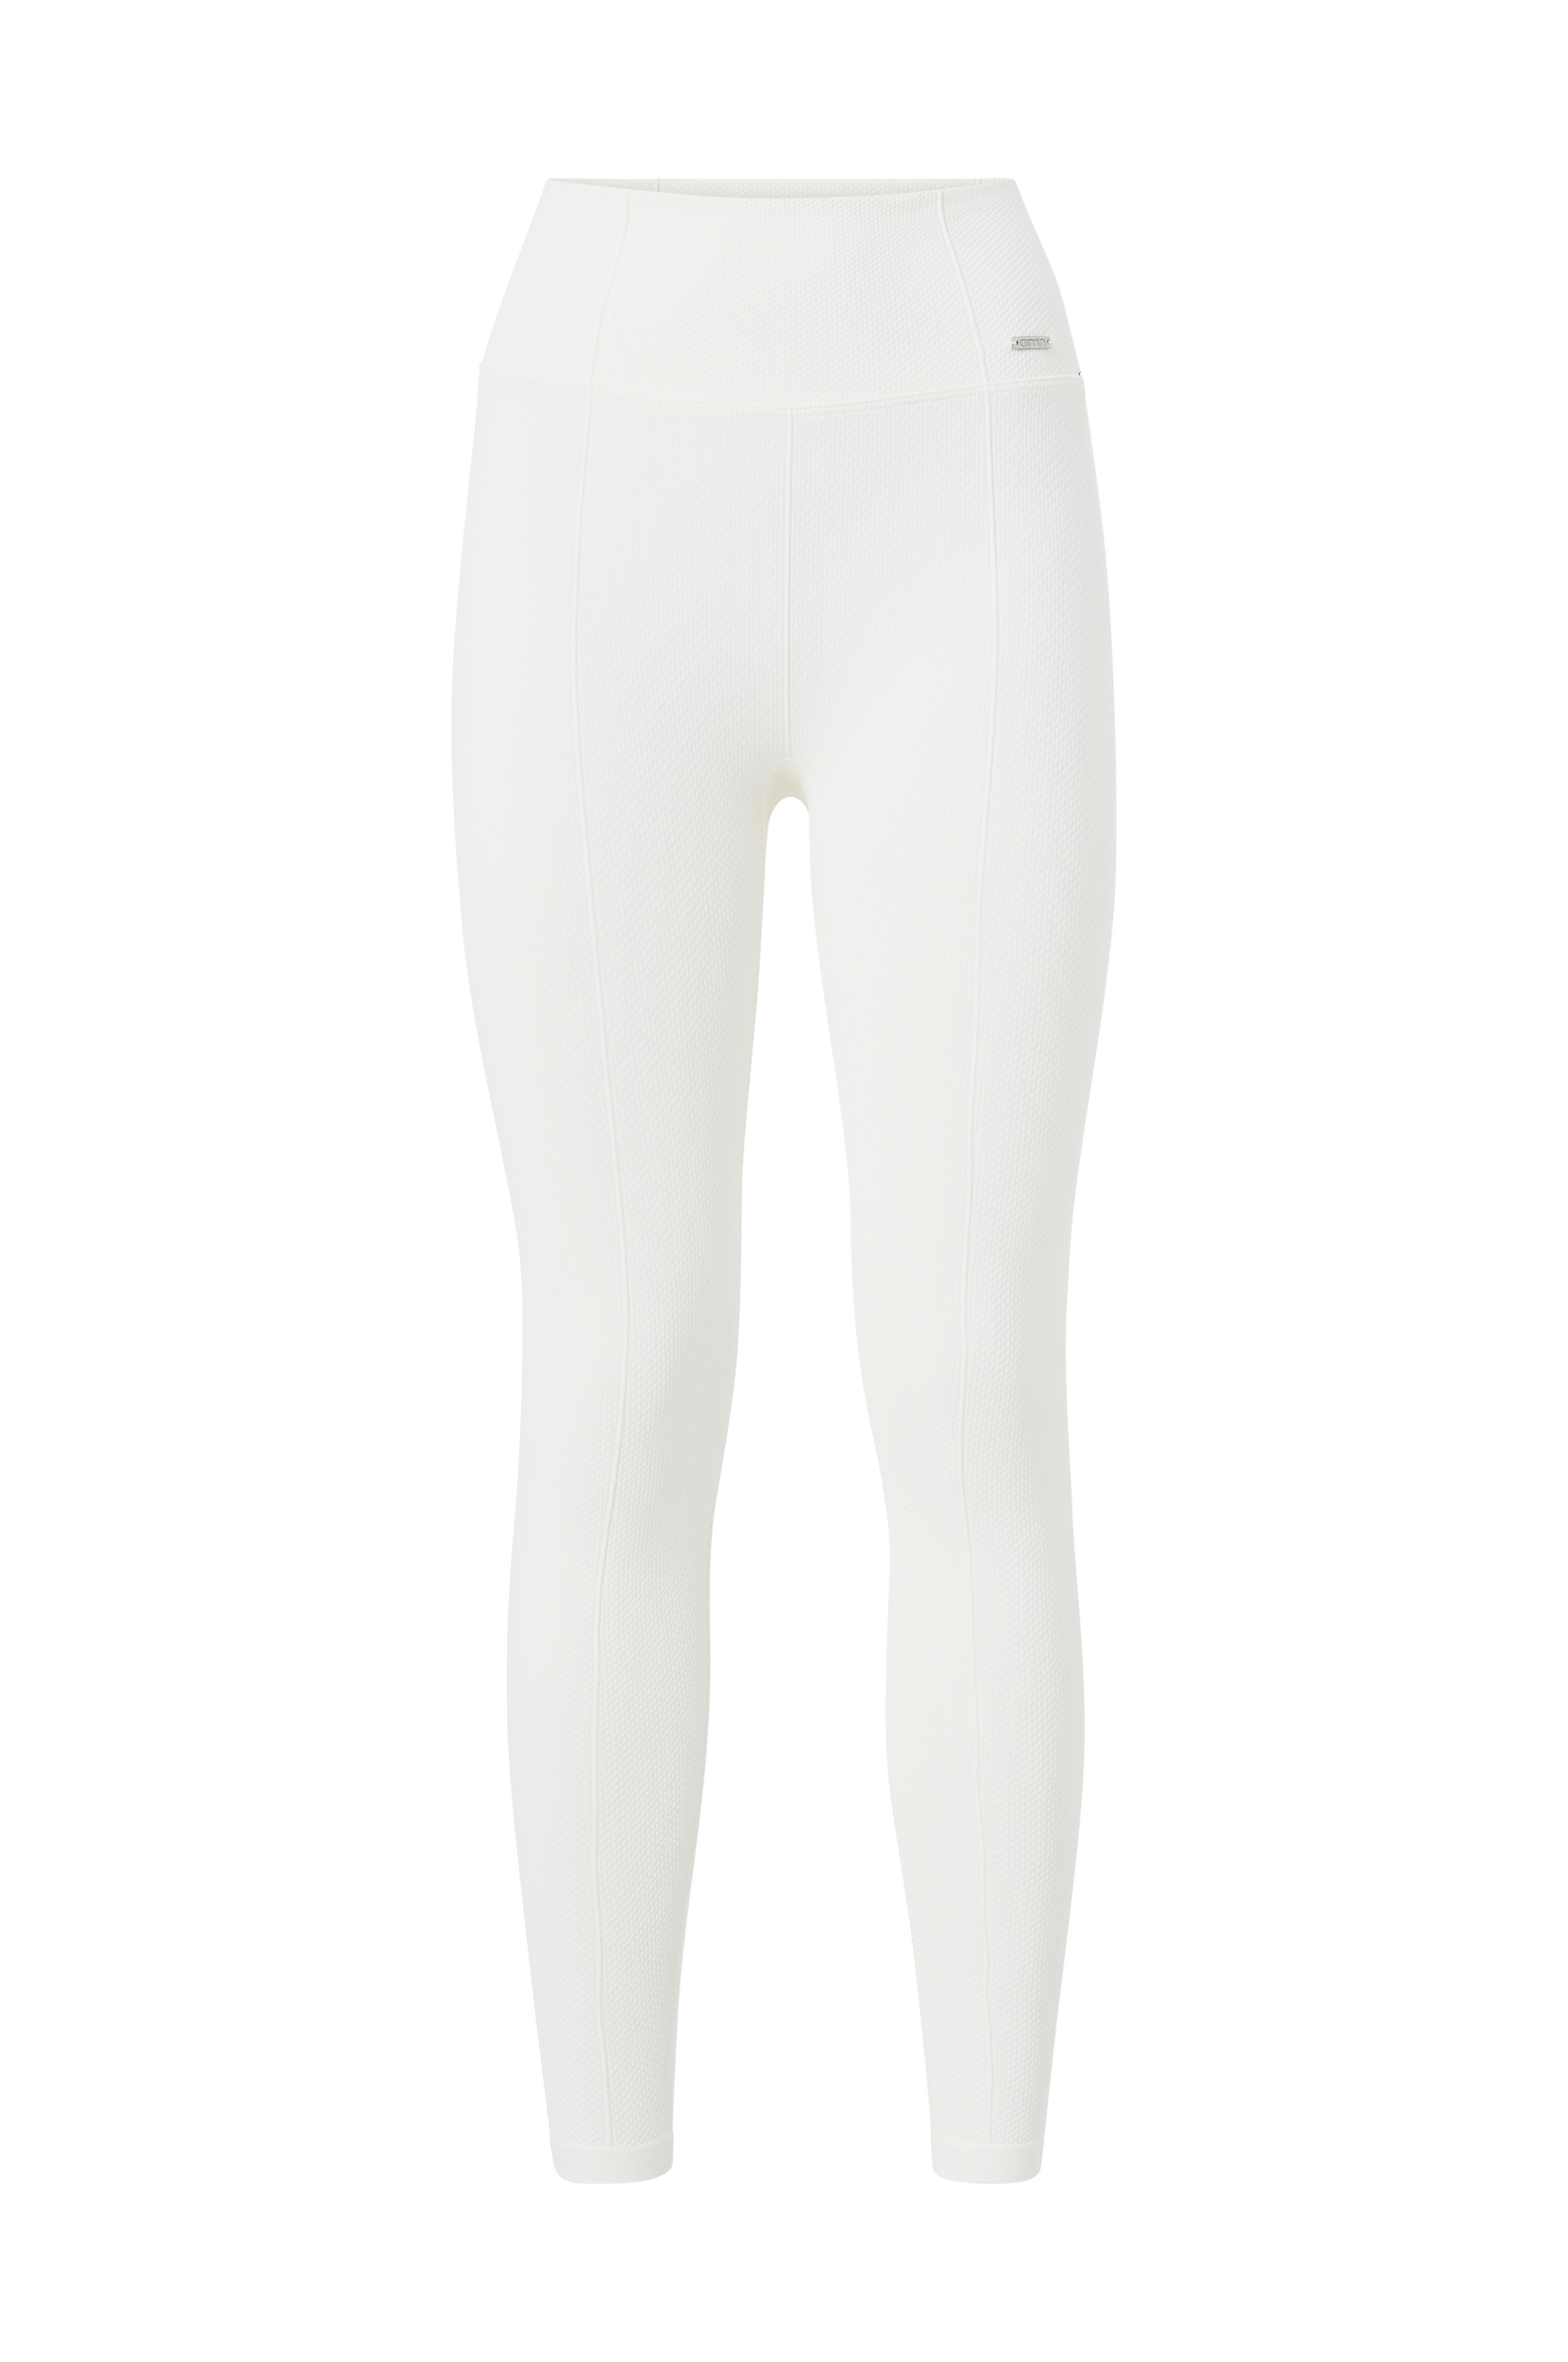 Aim'n - Träningstights Off-White Luxe Seamless Tights - Natur